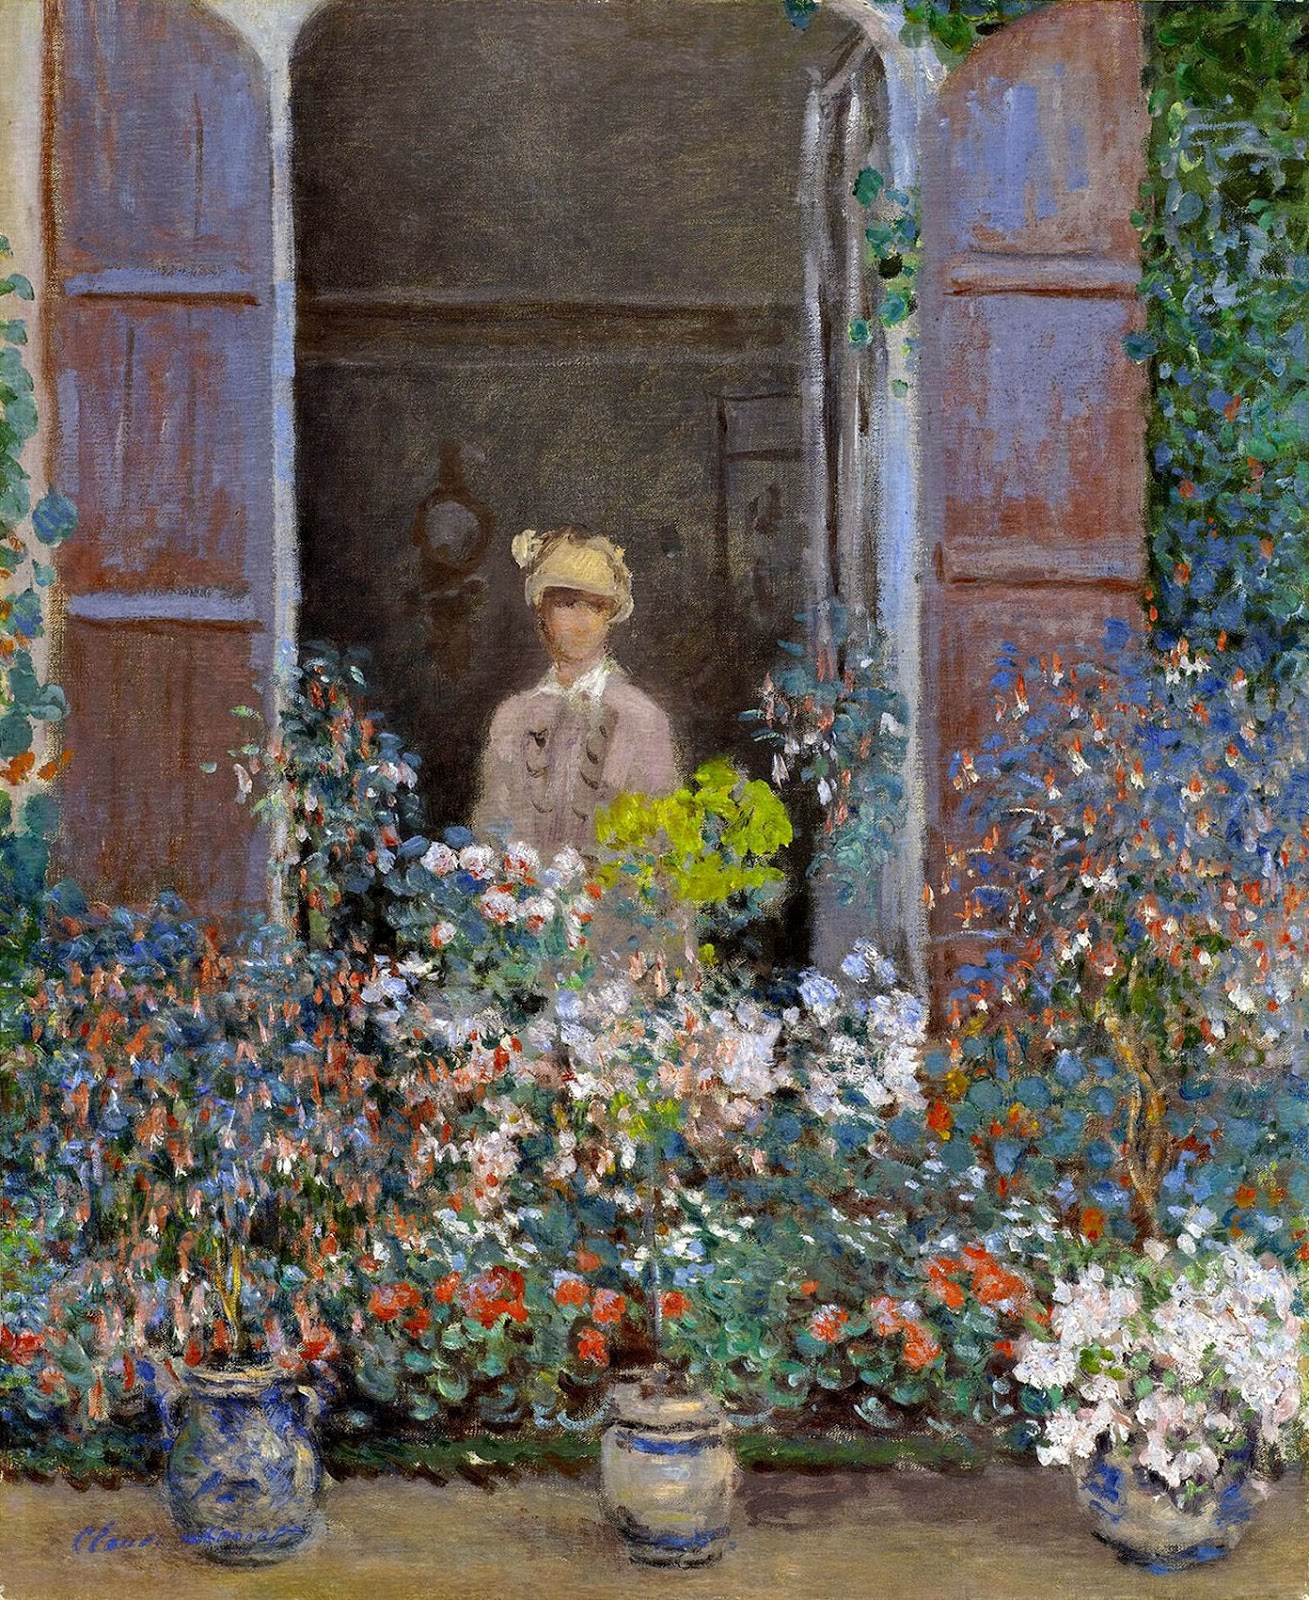 Claude-Monet-Camille-Monet-at-the-Window-Argenteuil-1873